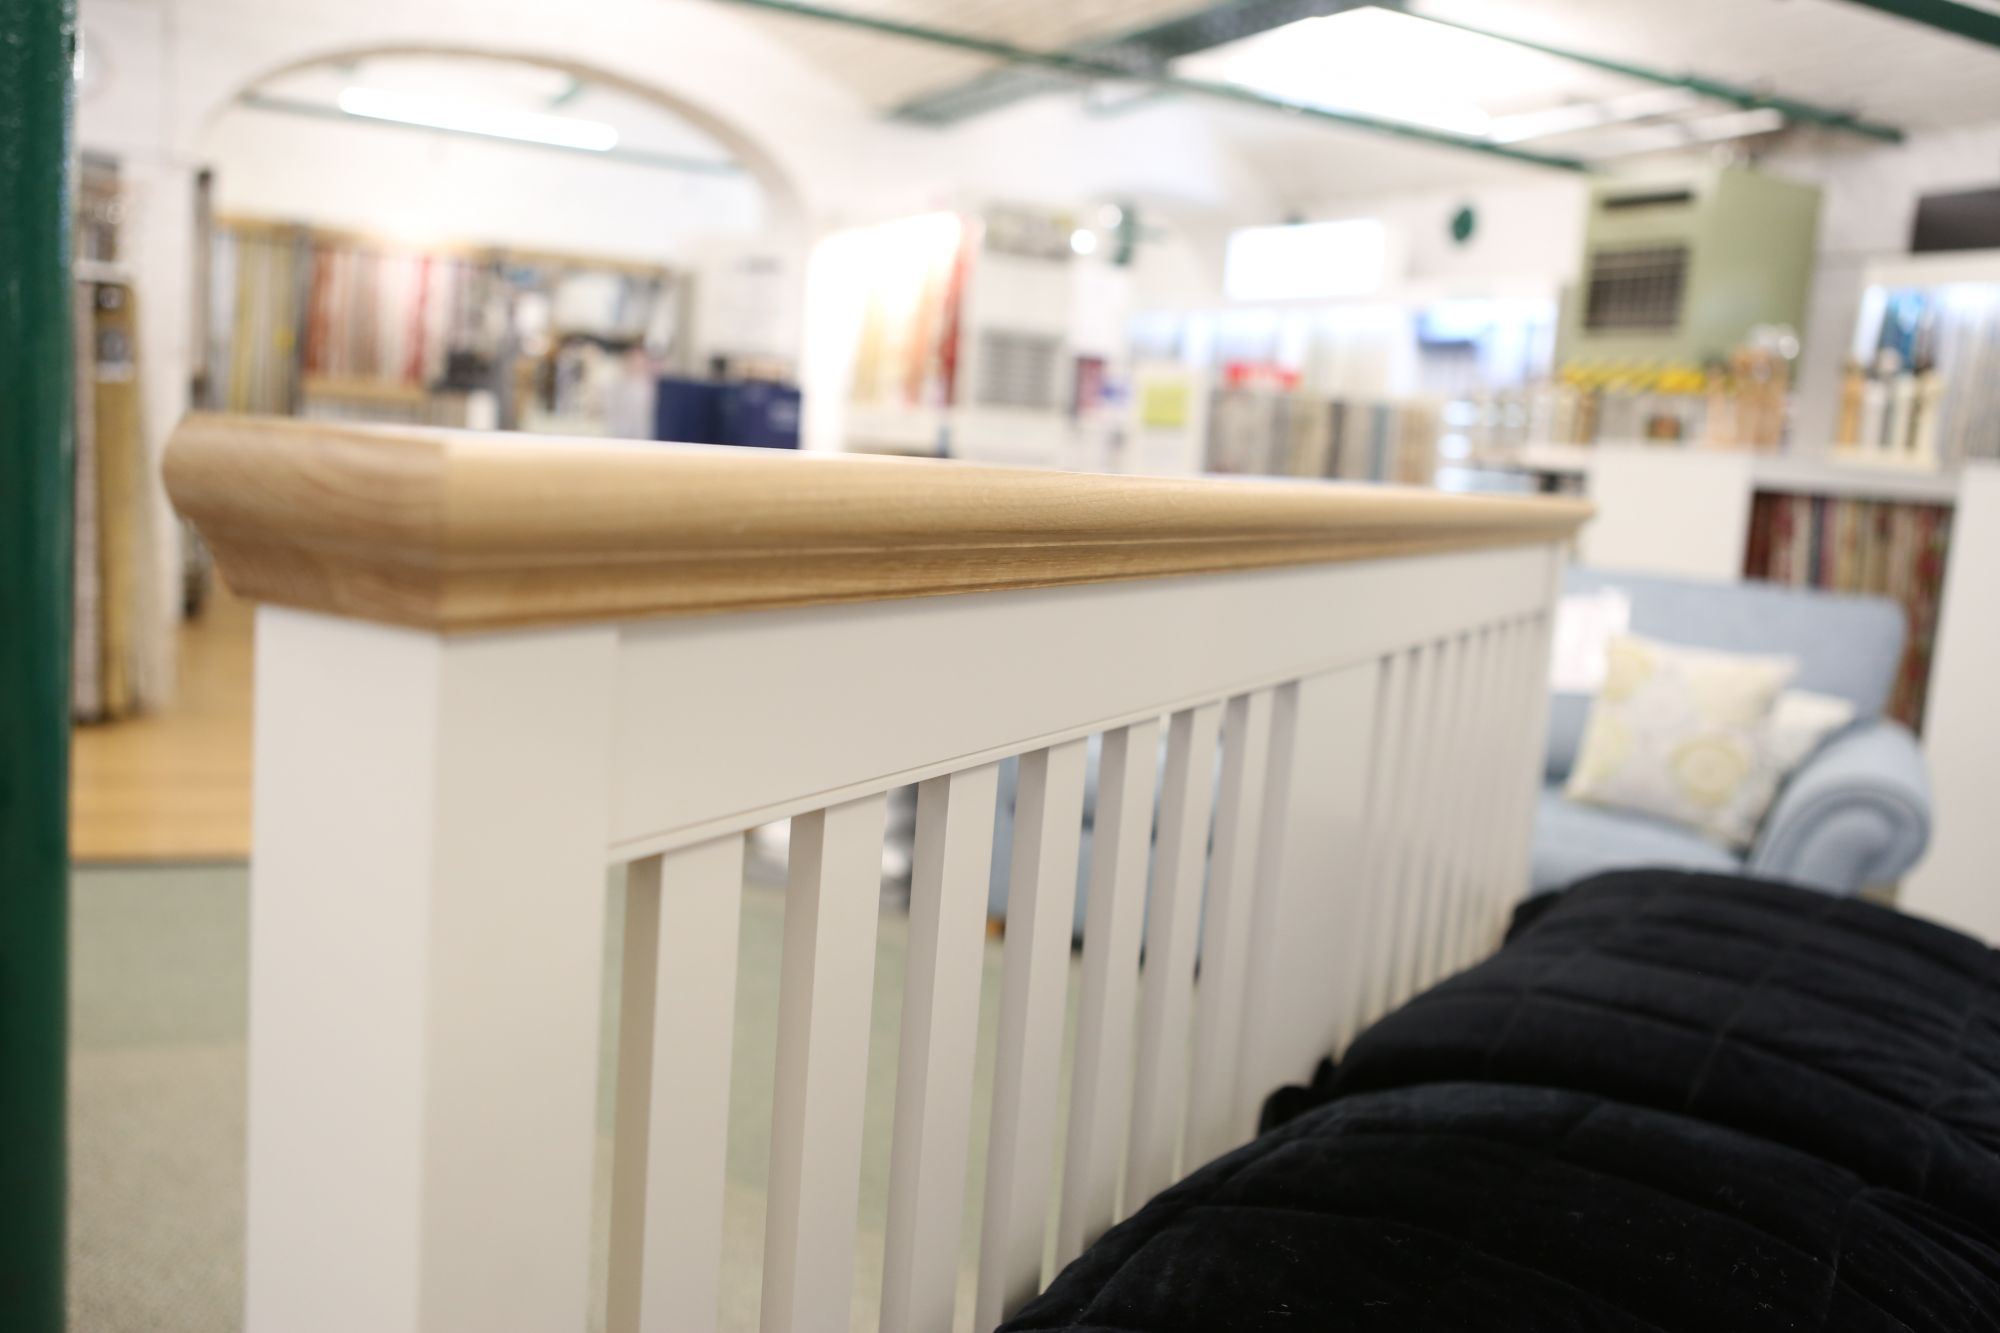 Bentley Designs Bed frame Bedstead at Gardiner Haskins Showroom.